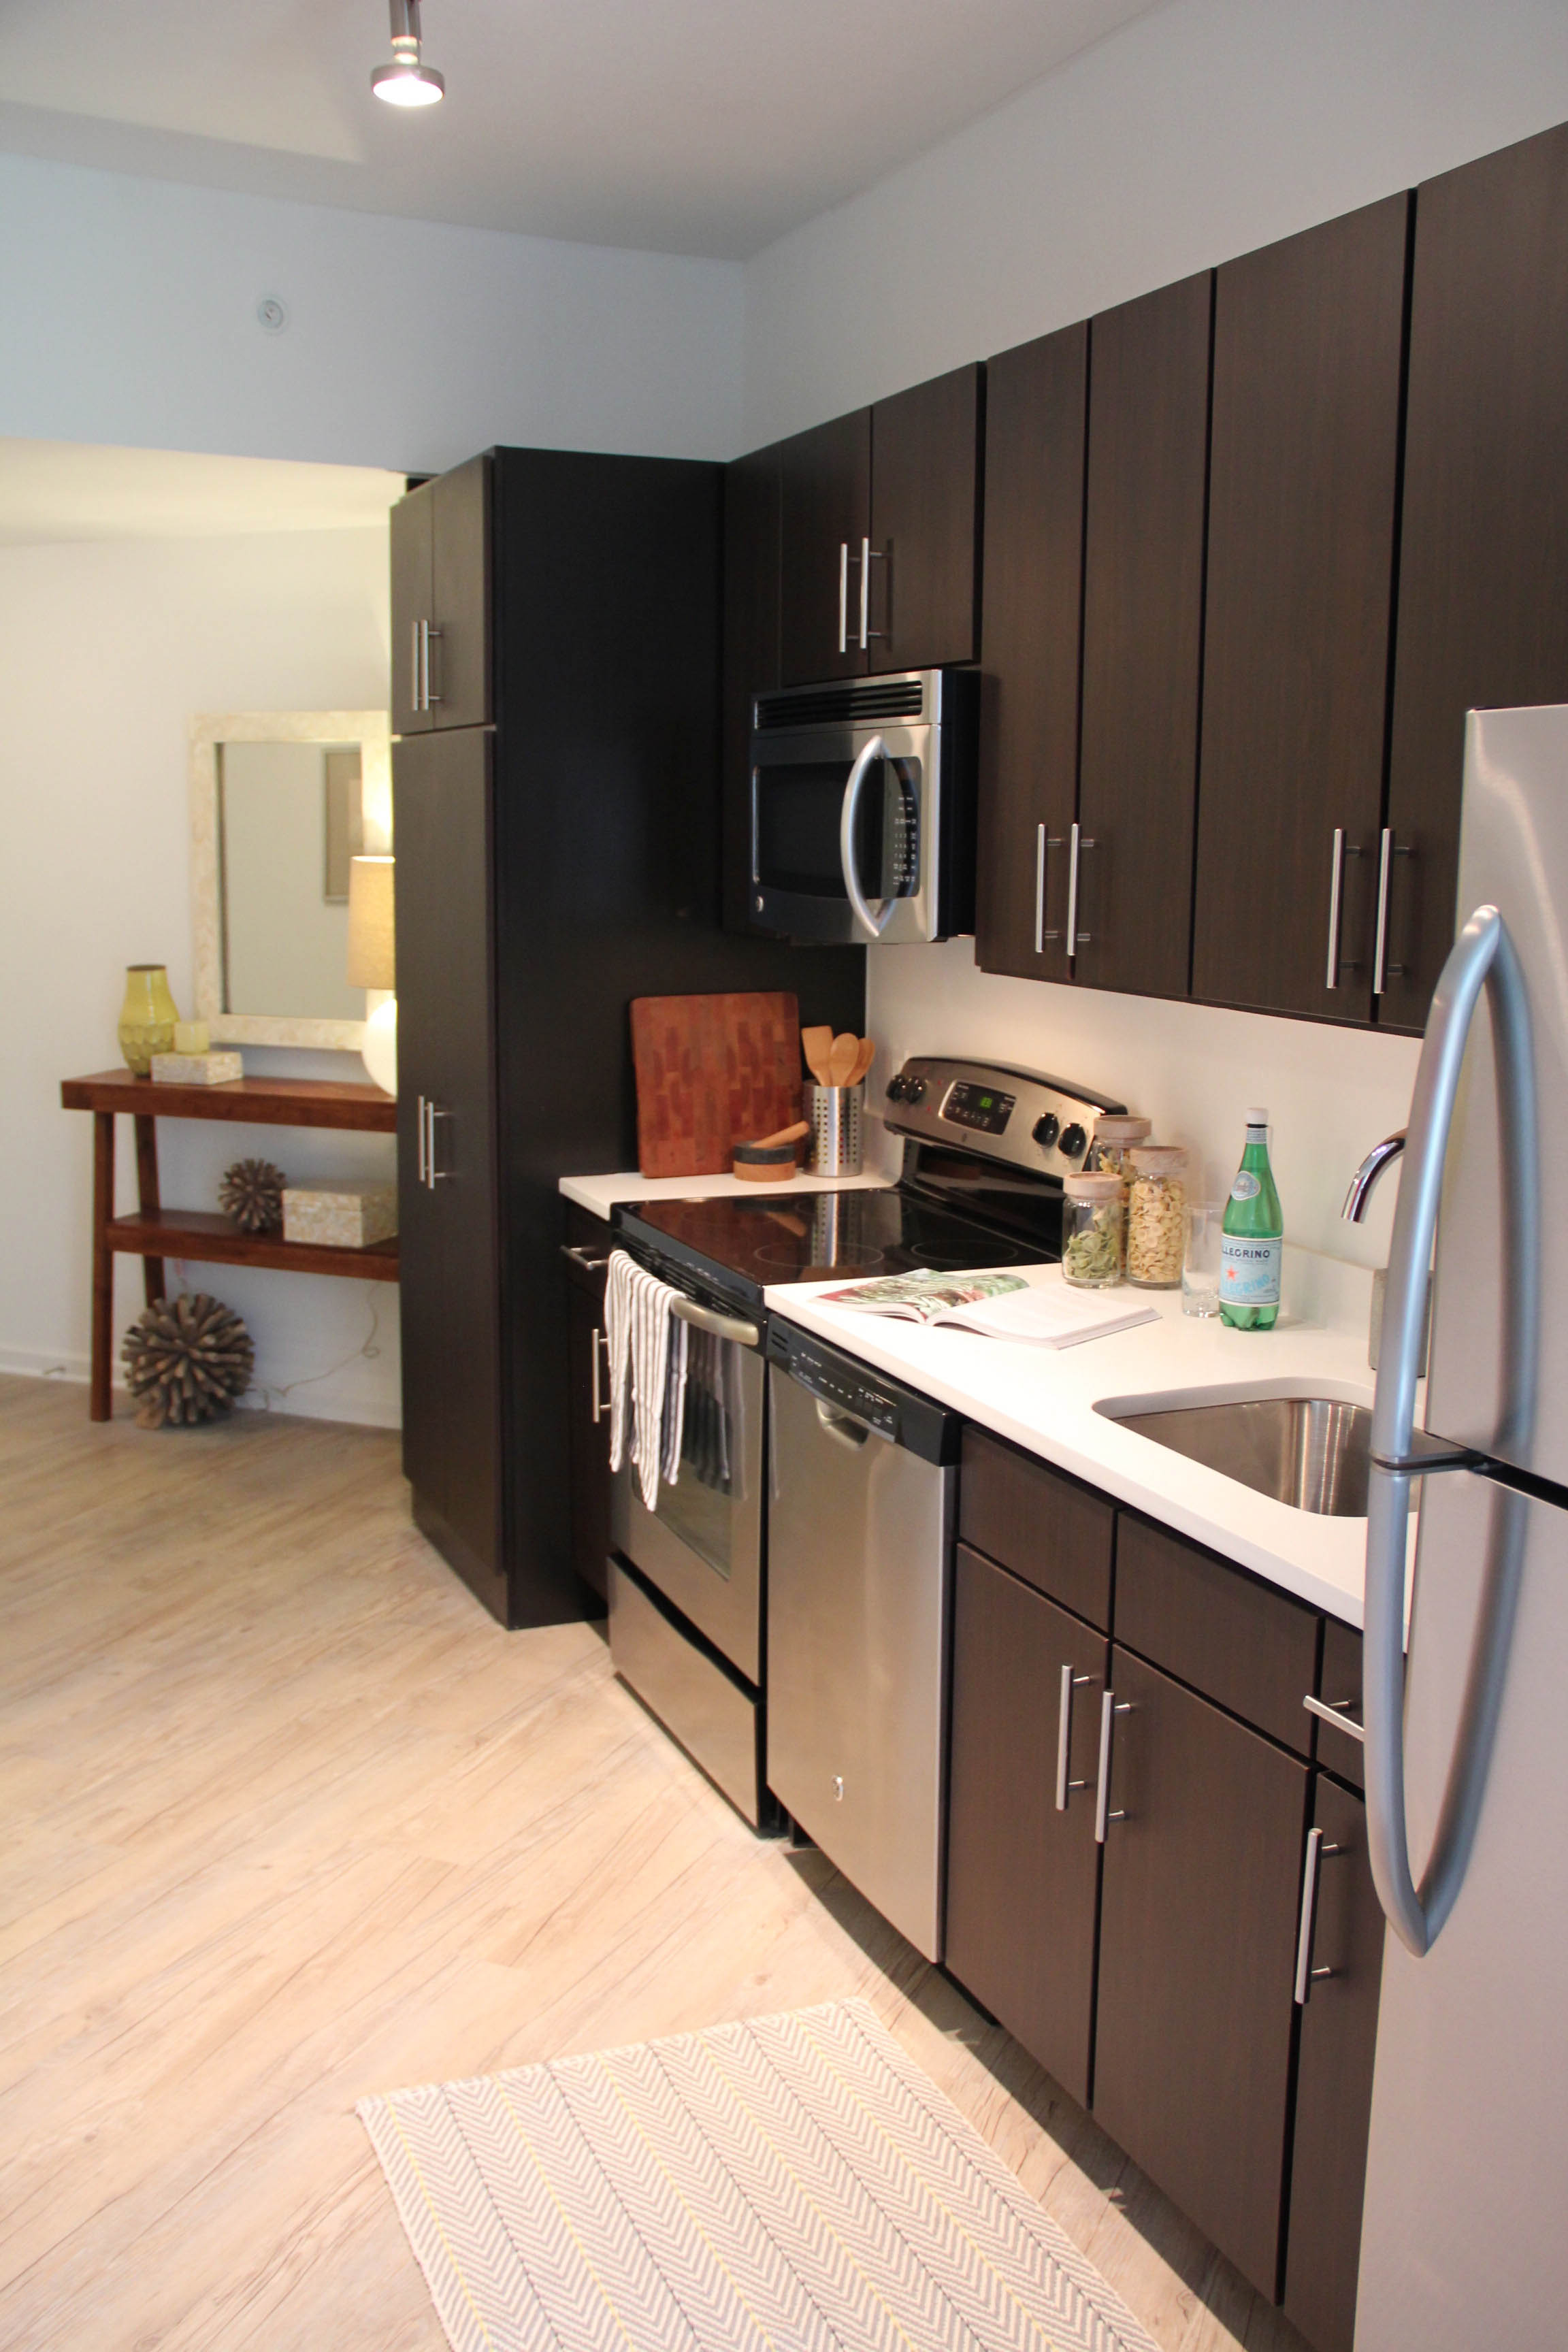 14w apartments open in u street neighborhood with designer for Living in a model apartment